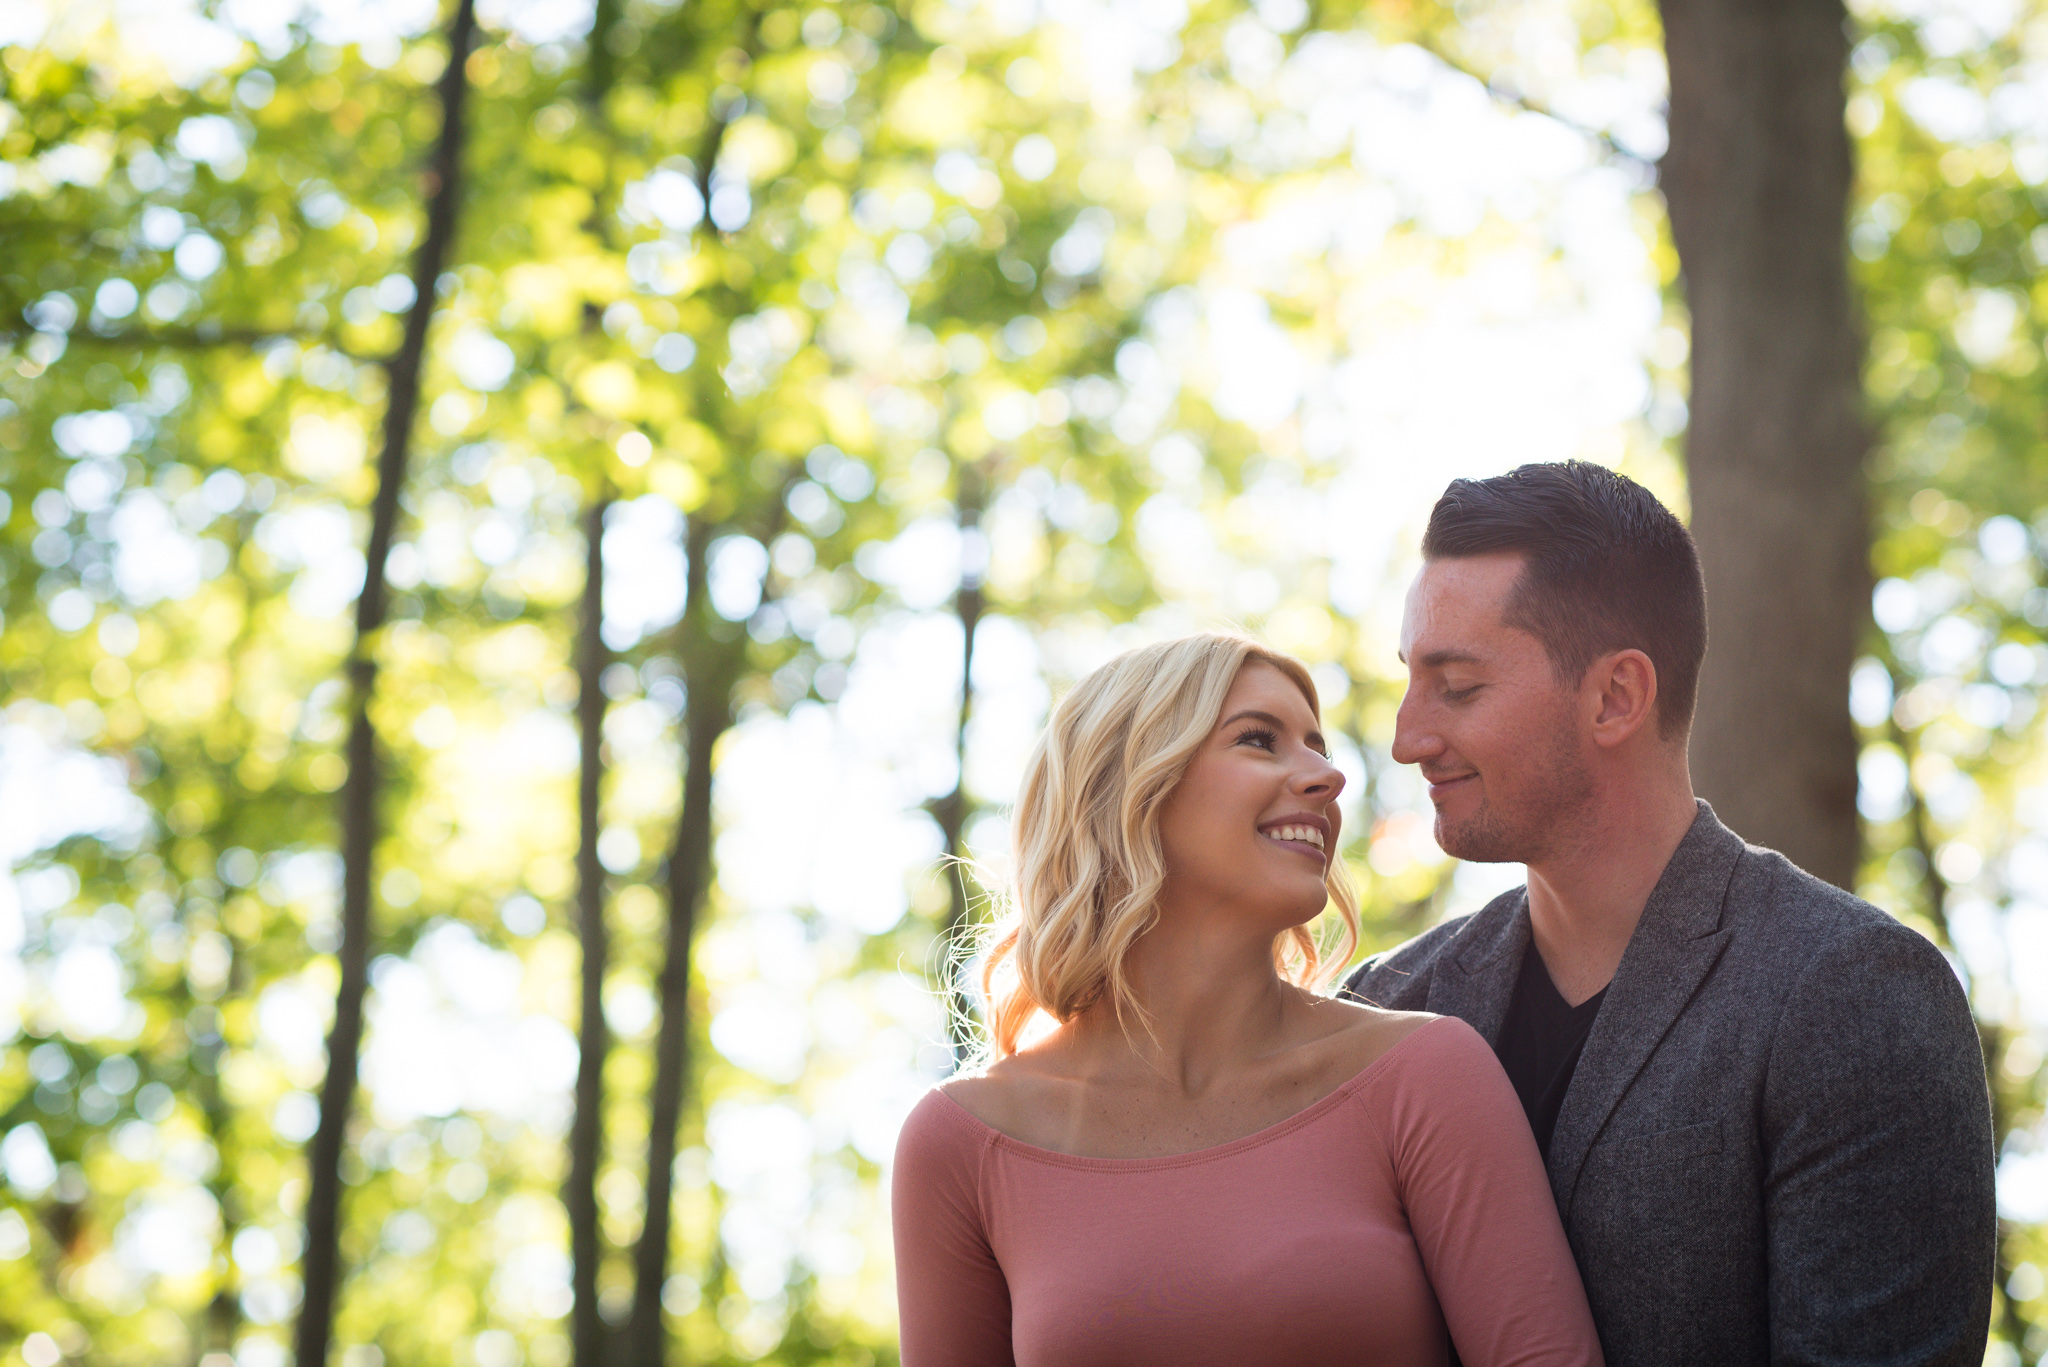 Mindy-Engagement-photography-wedding-photographer-northeast-PA-Scranton-Poconos-11.jpg